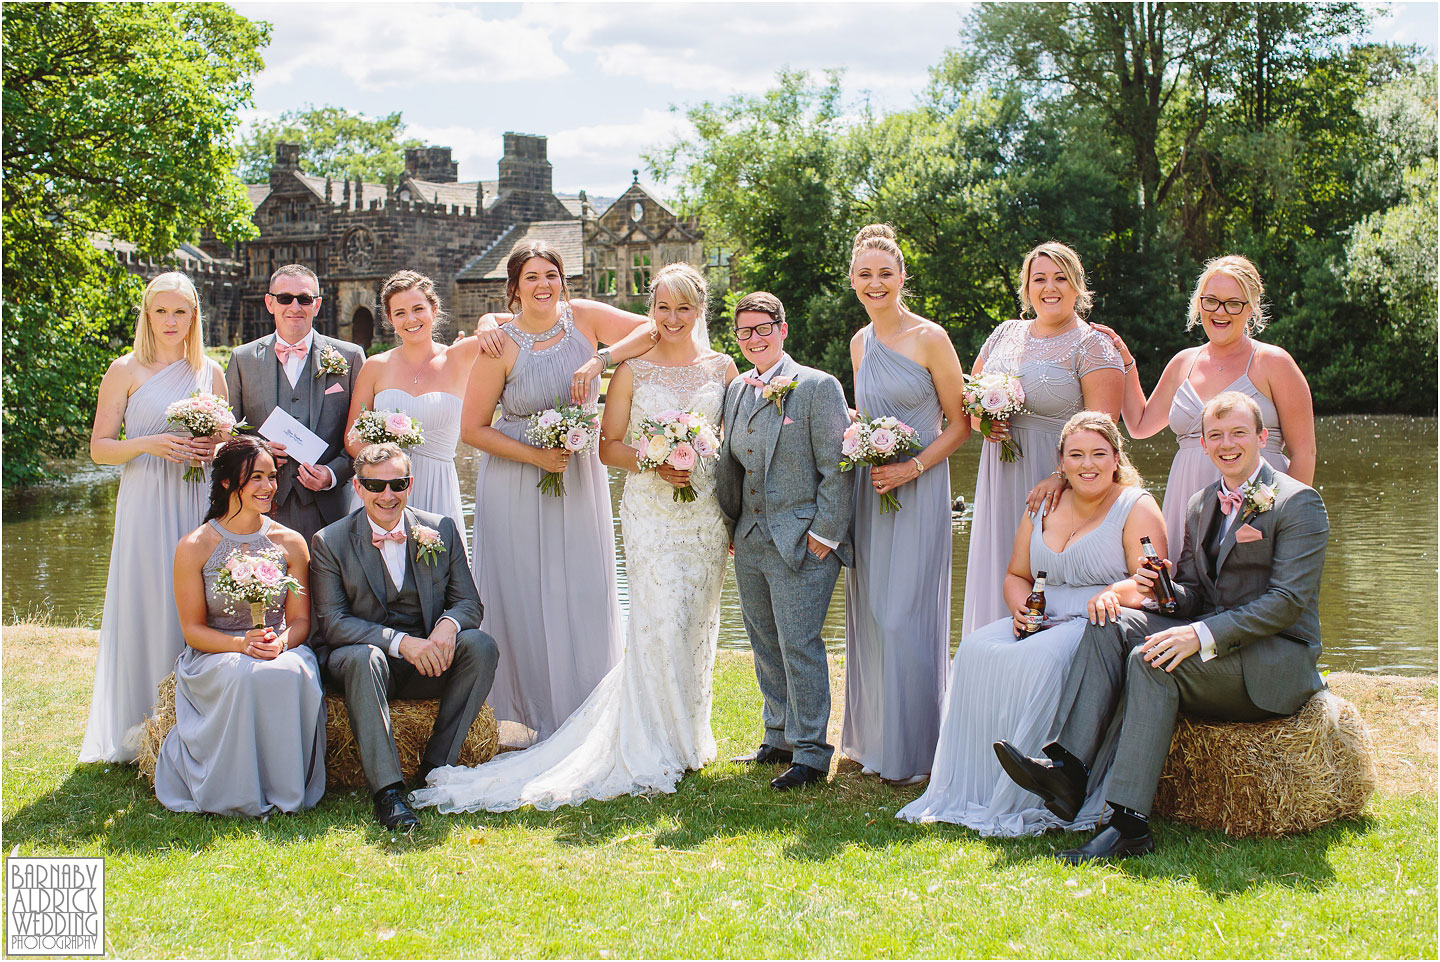 Beautiful Group wedding photo at East Riddlesden Hall, Amazing Yorkshire Wedding Photos, Best Yorkshire Wedding Photos 2018